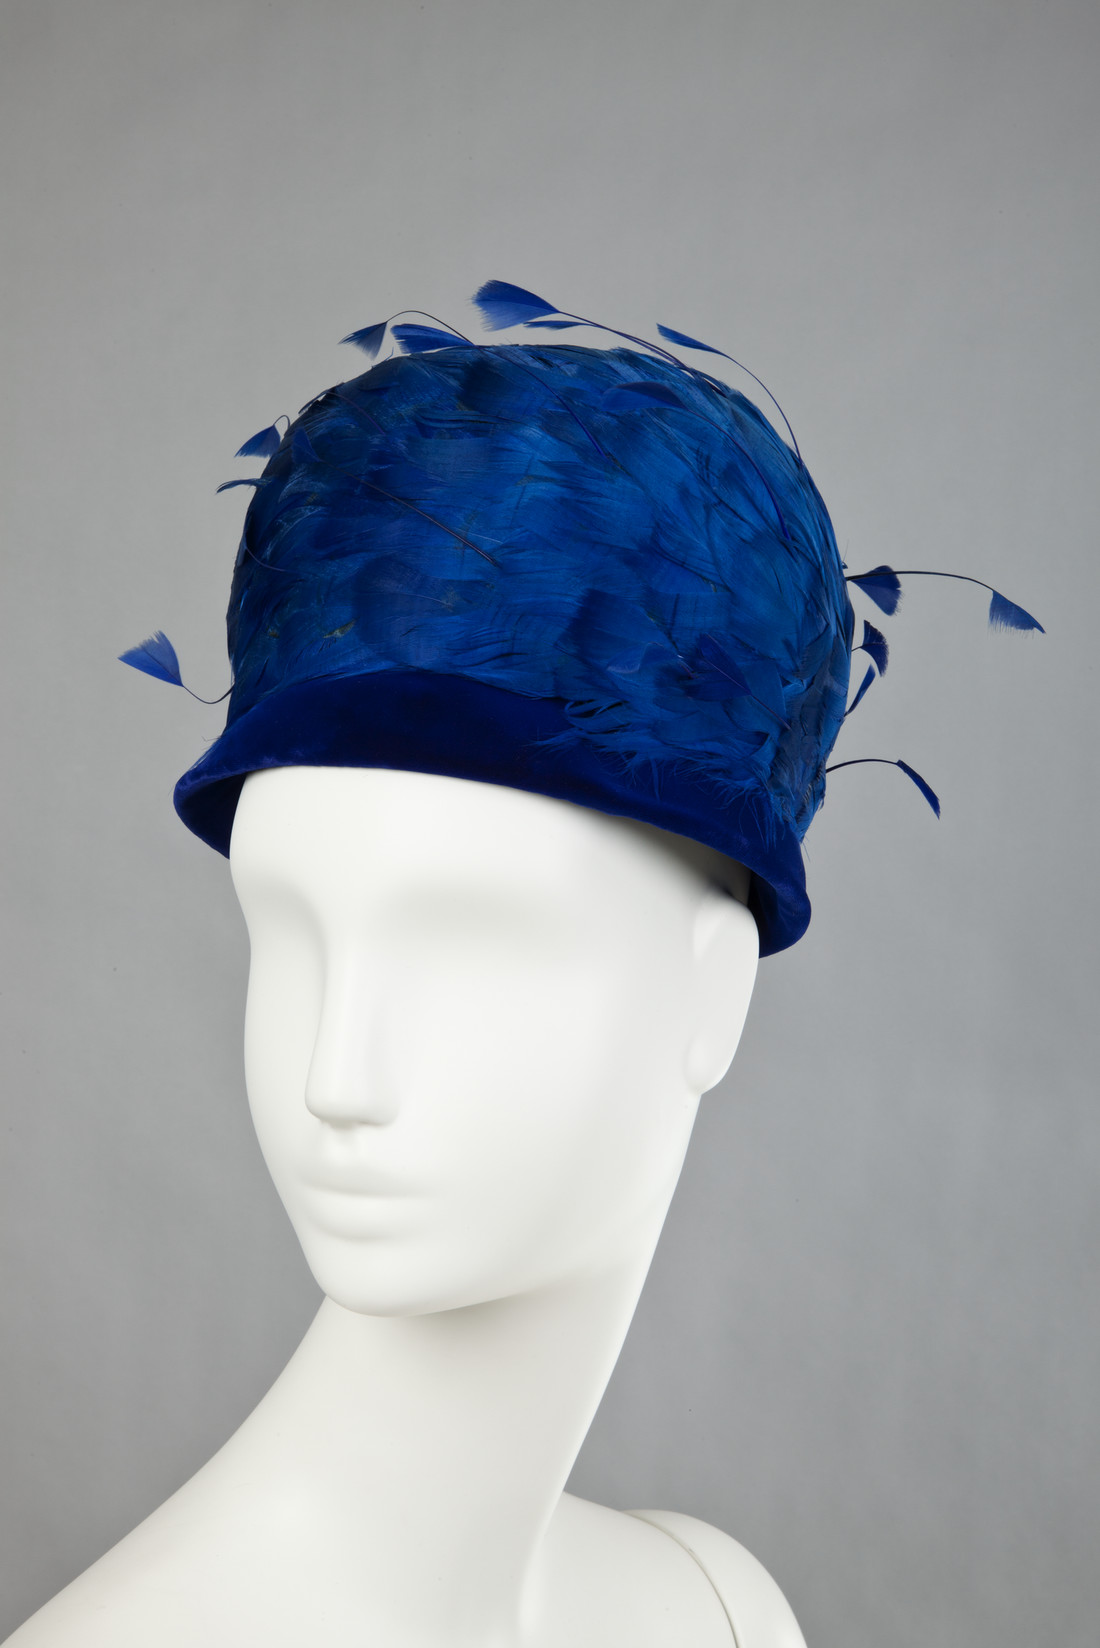 Image of blue feathered hat